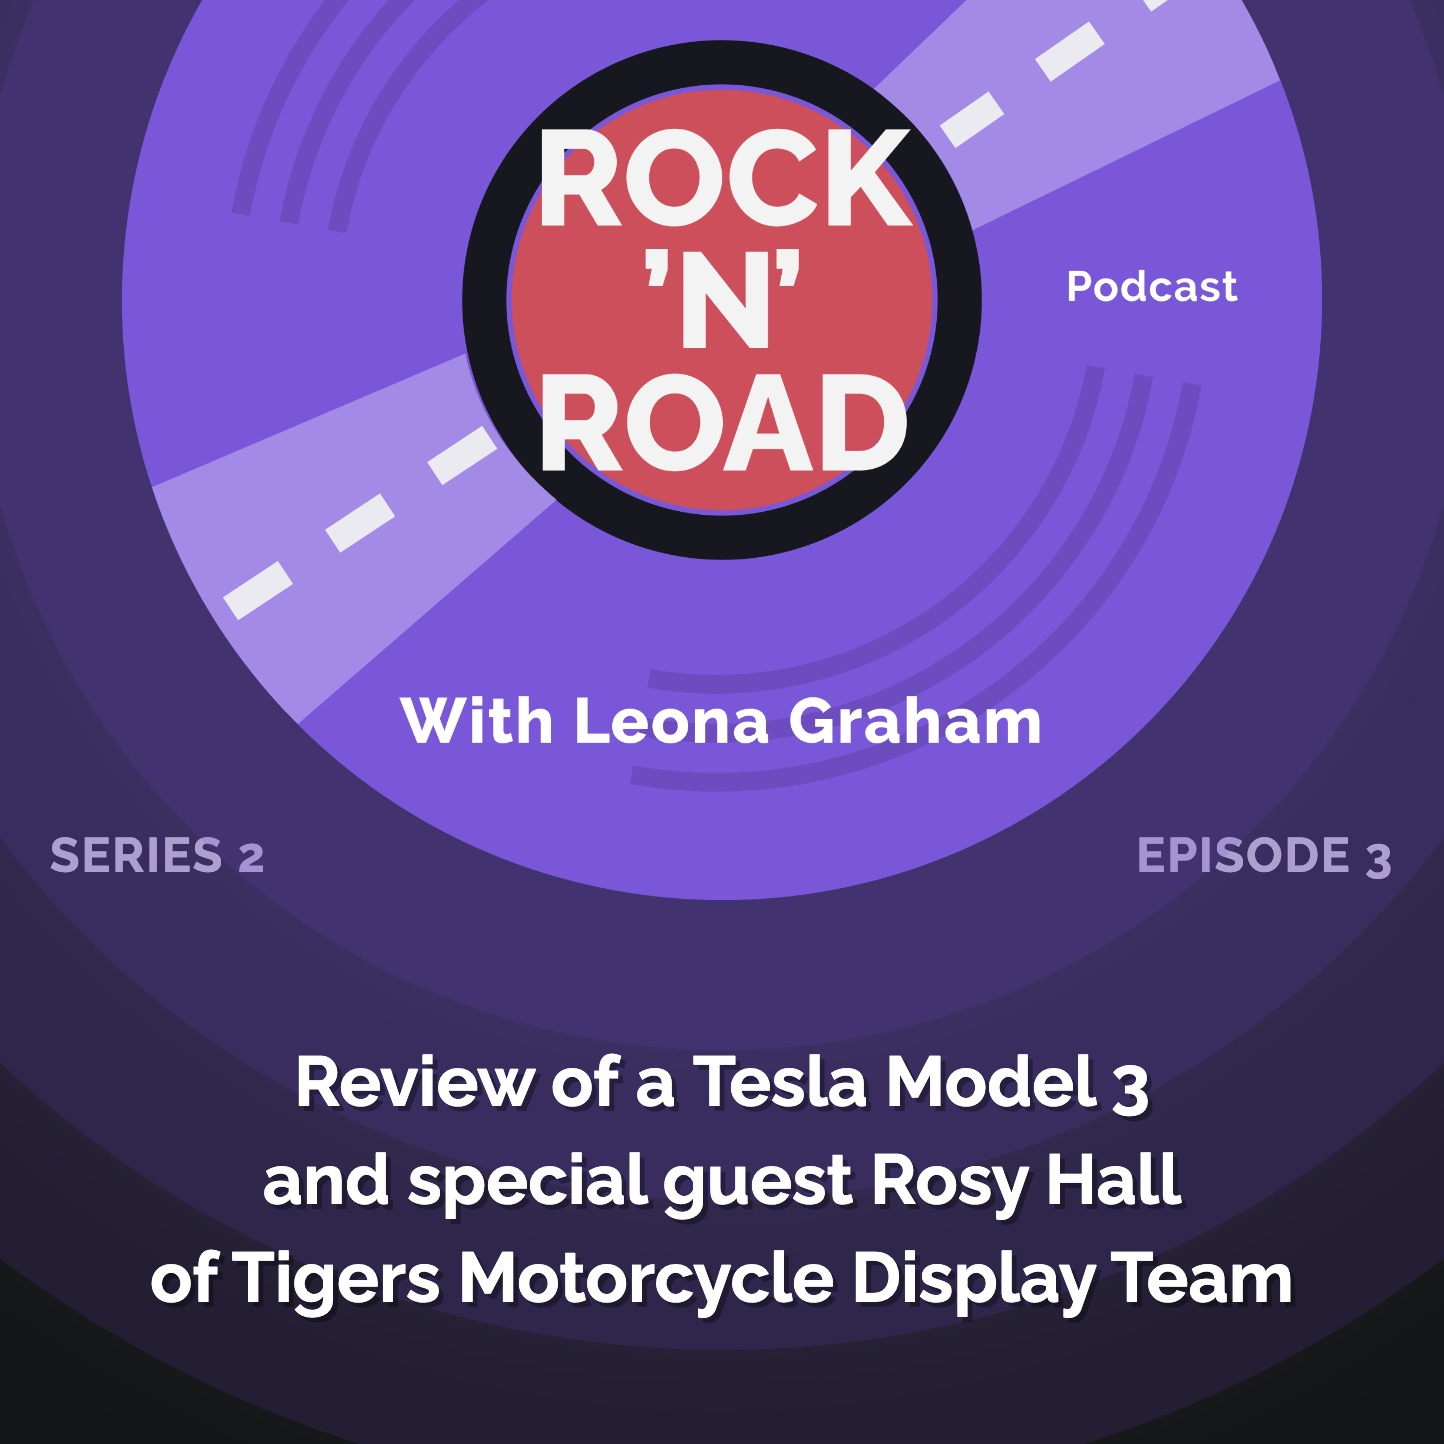 Series 2 Episode 3: Review of a Tesla Model 3 and special guest Rosy Hall from the Tigers Motorcycle Display Team